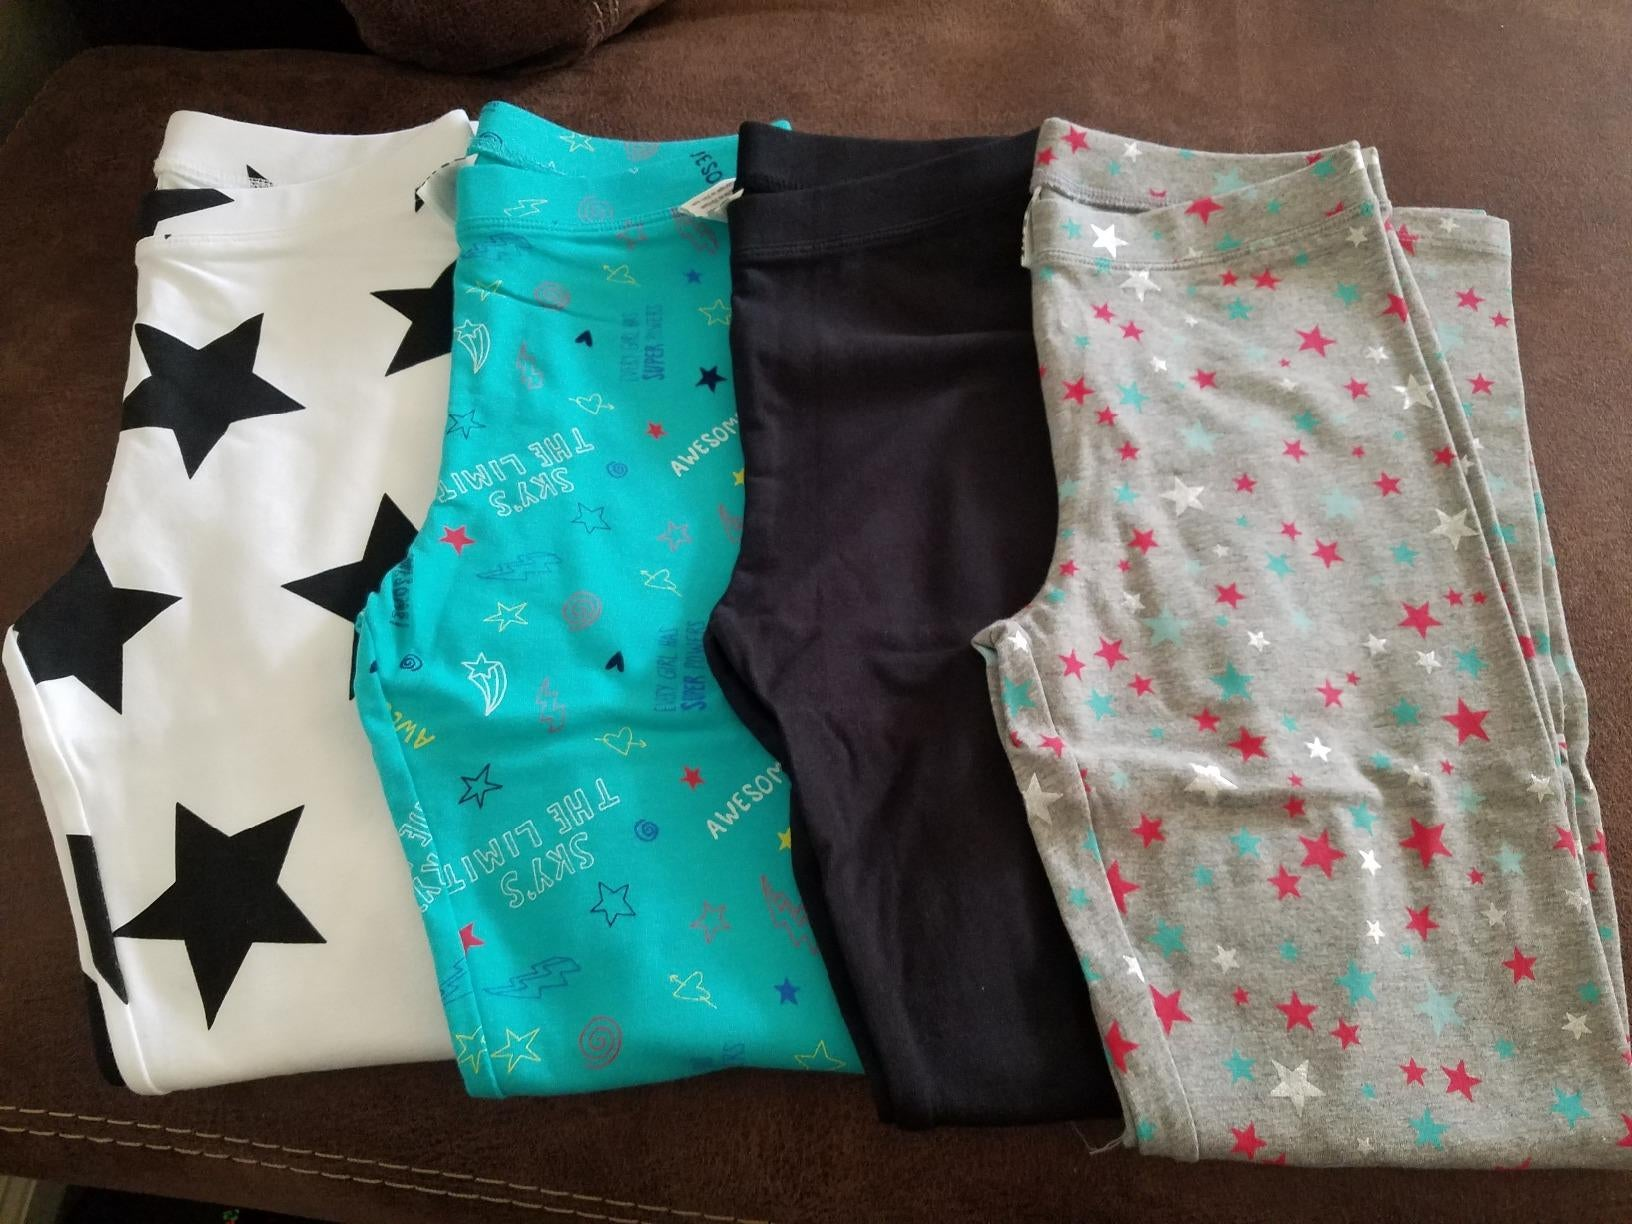 four pairs of leggings with different star designs on them